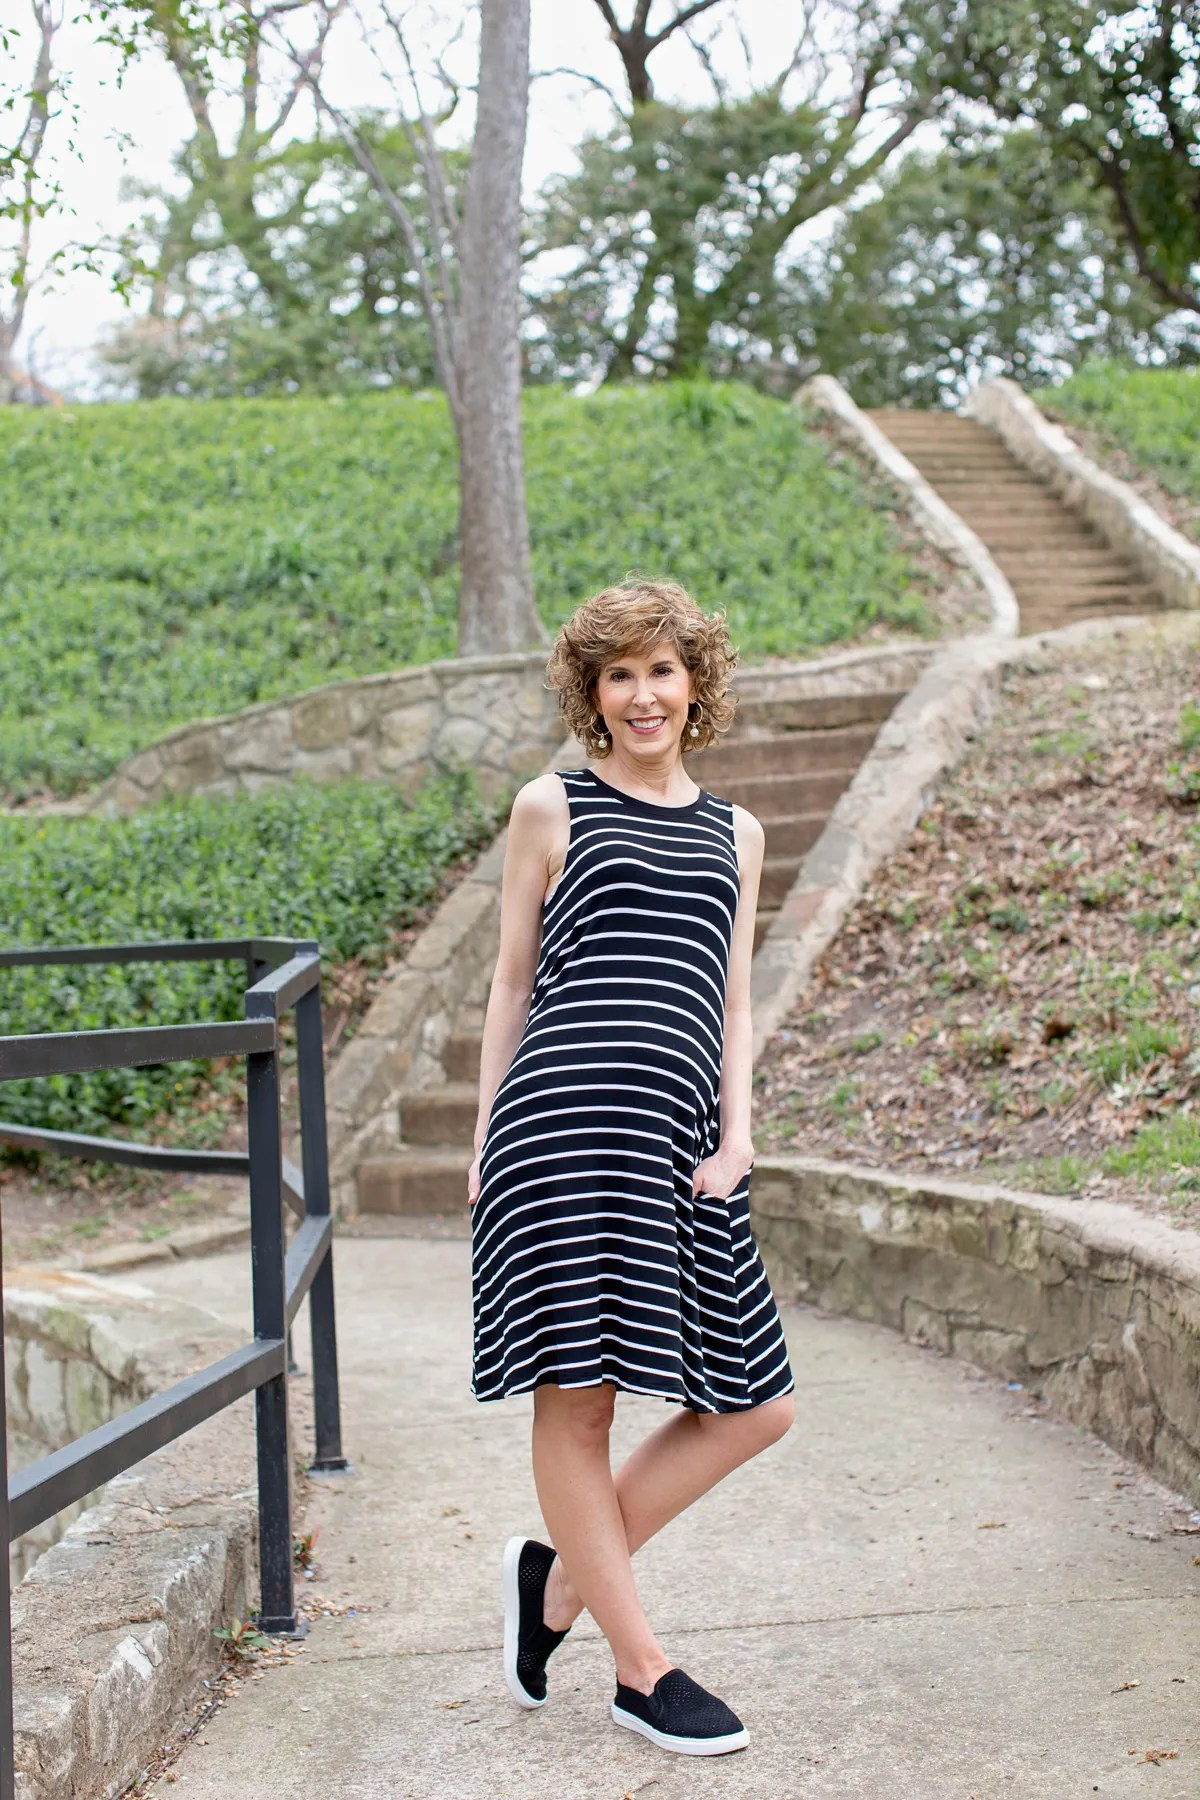 woman in black and white striped dress in park